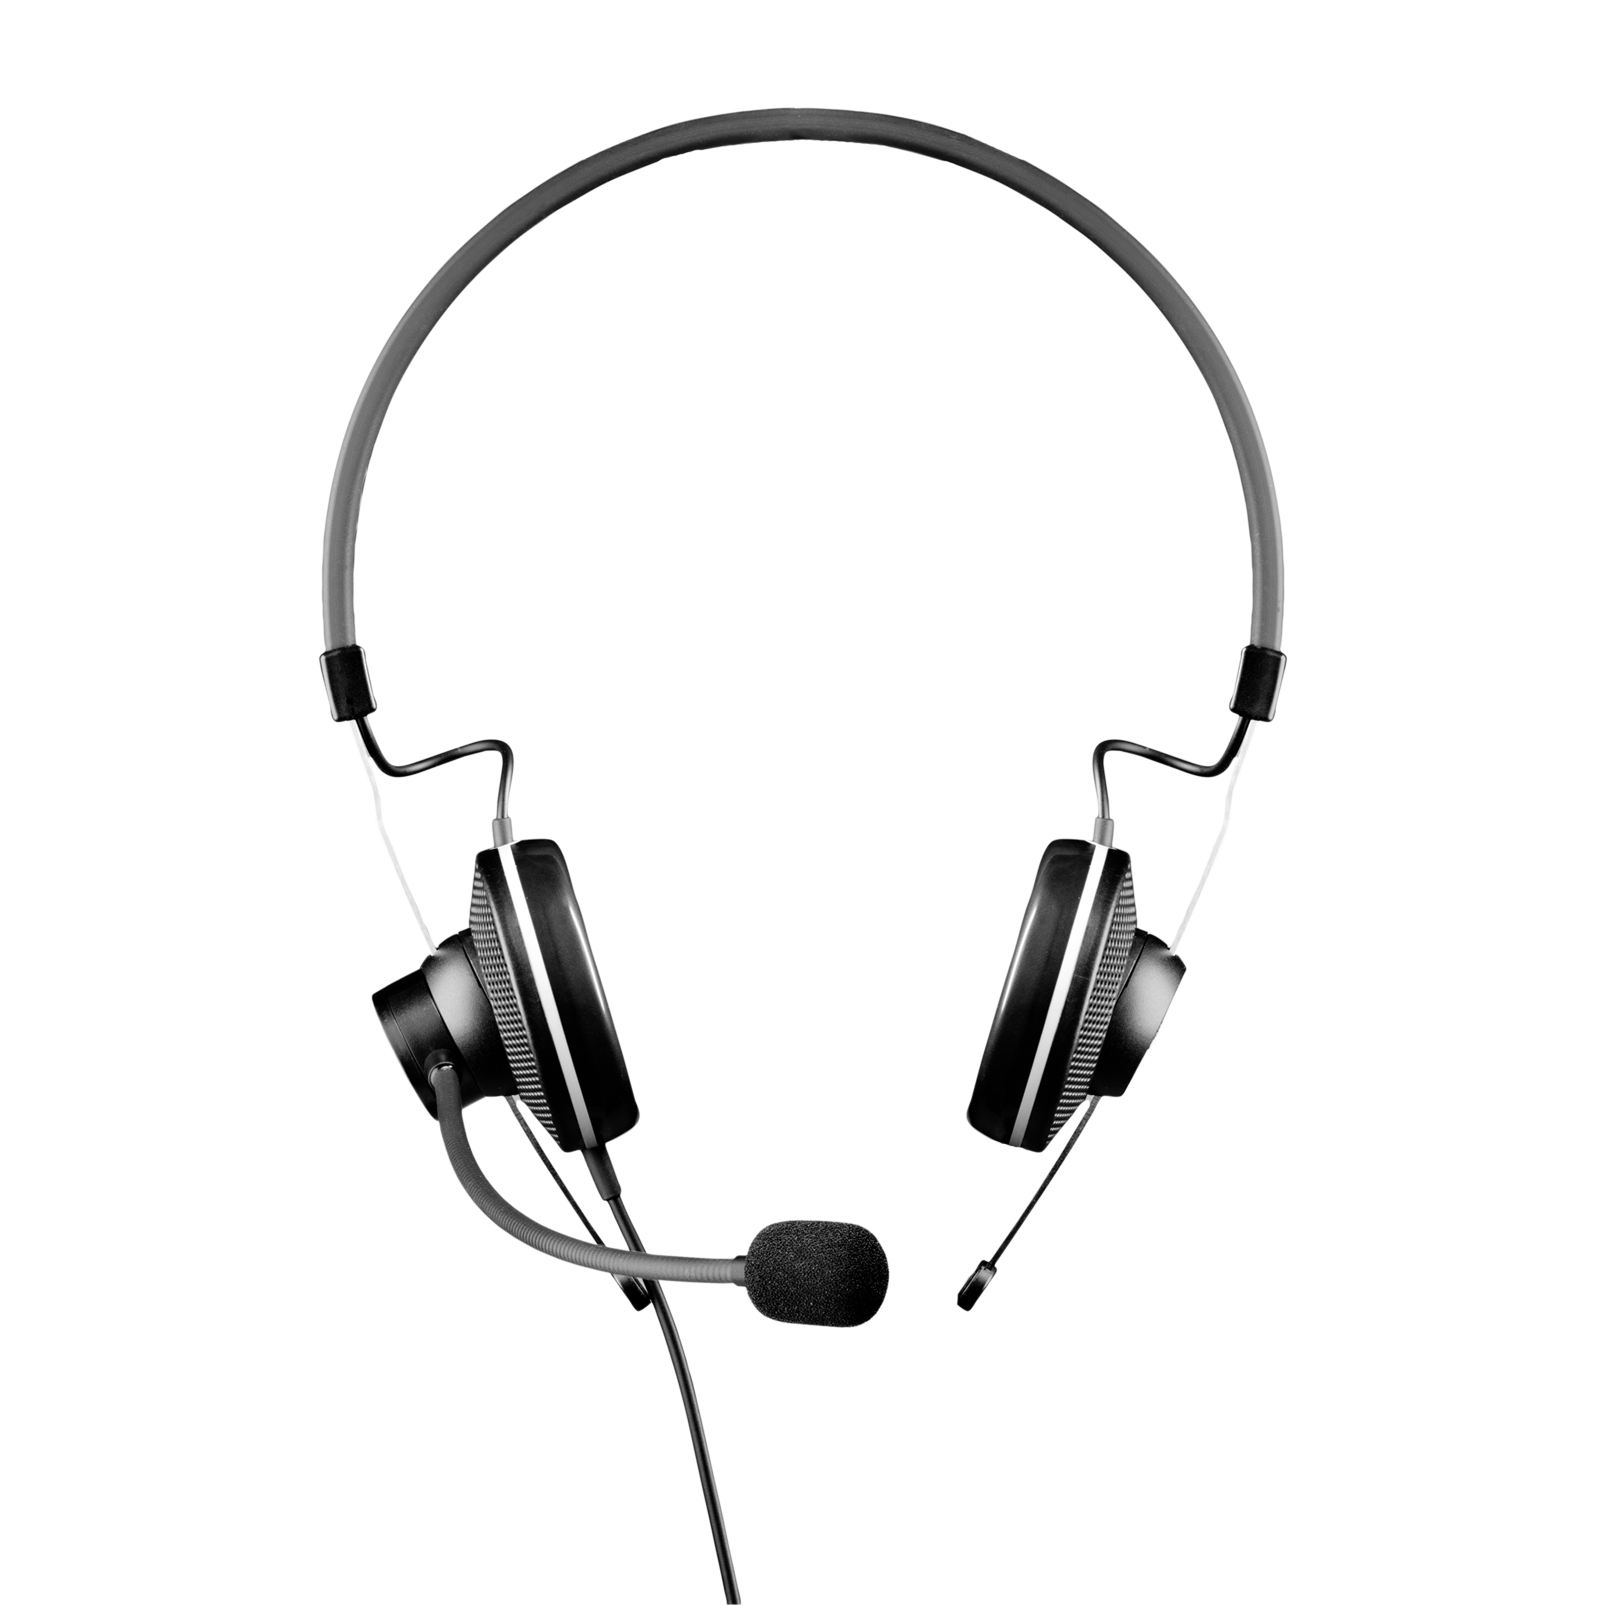 HSC15 - Black - High-performance conference headset - Front